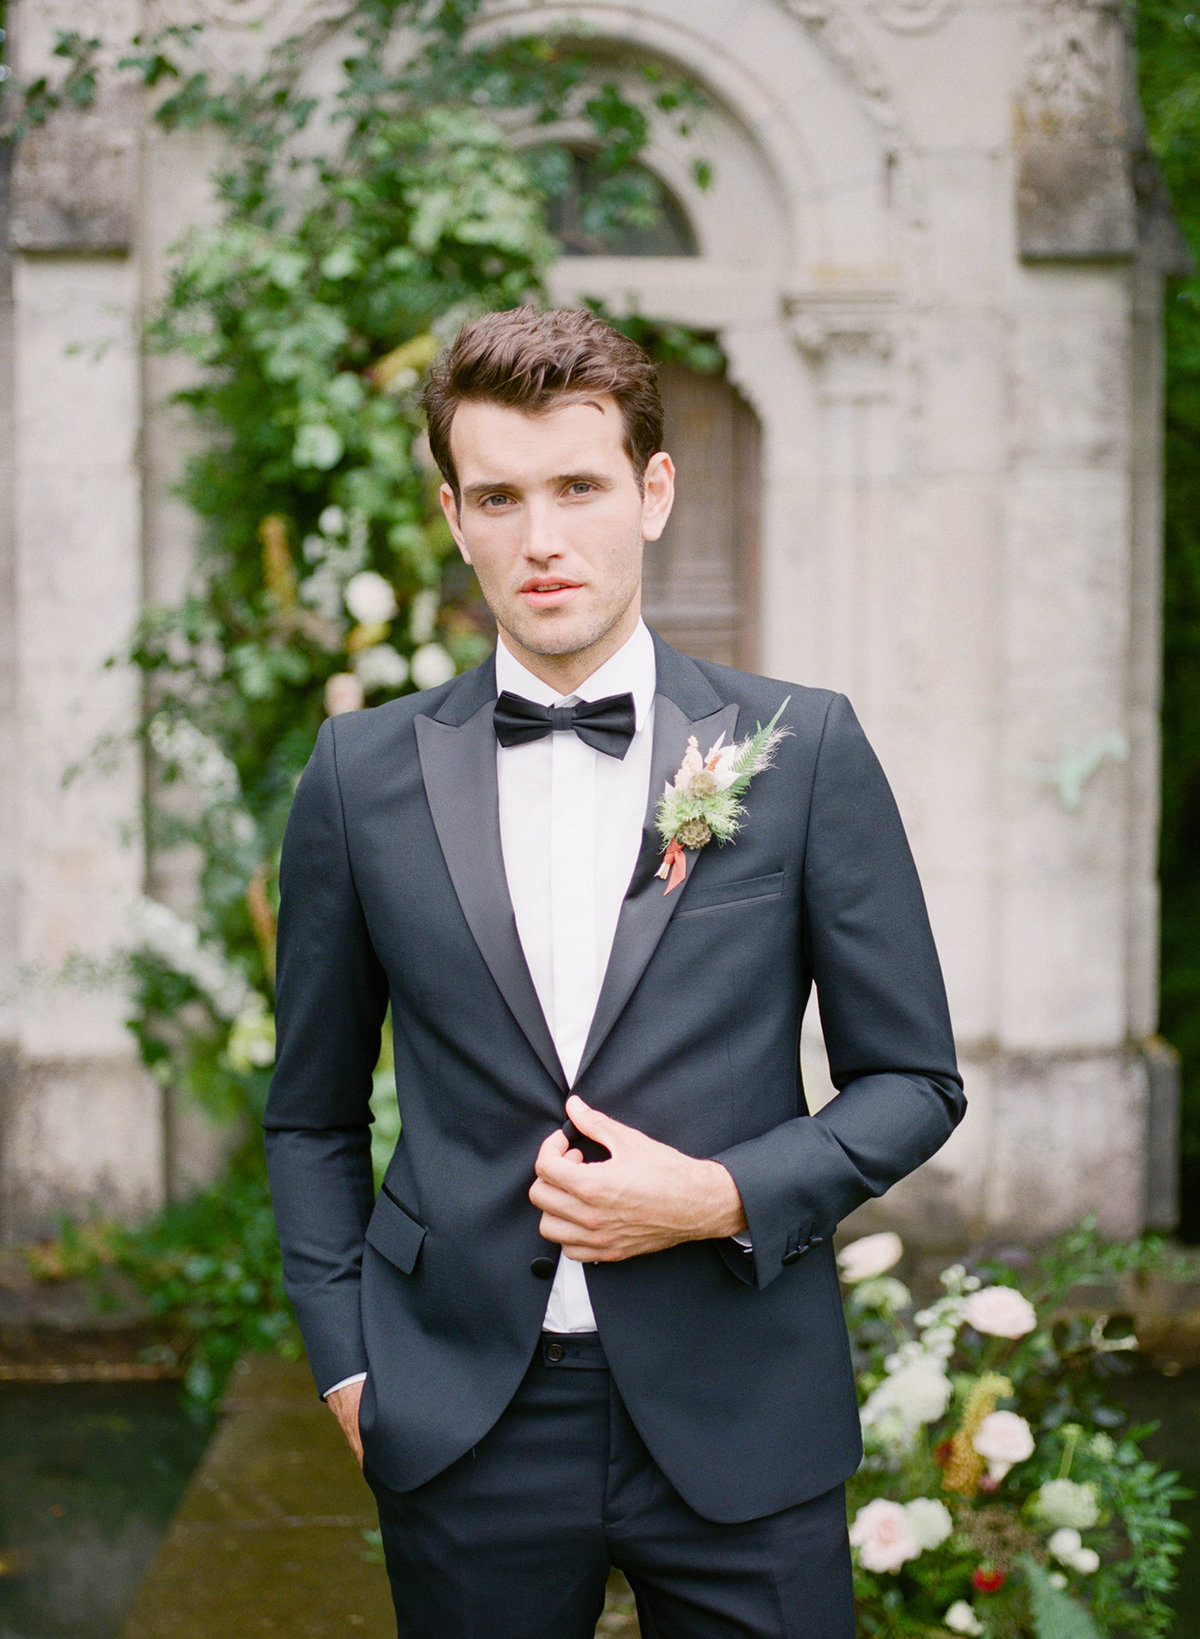 Destination Wedding Photographer - Ireland Editorial - Cliff at Lyons Kildare Ireland - Sarah Sunstrom Photography - 15